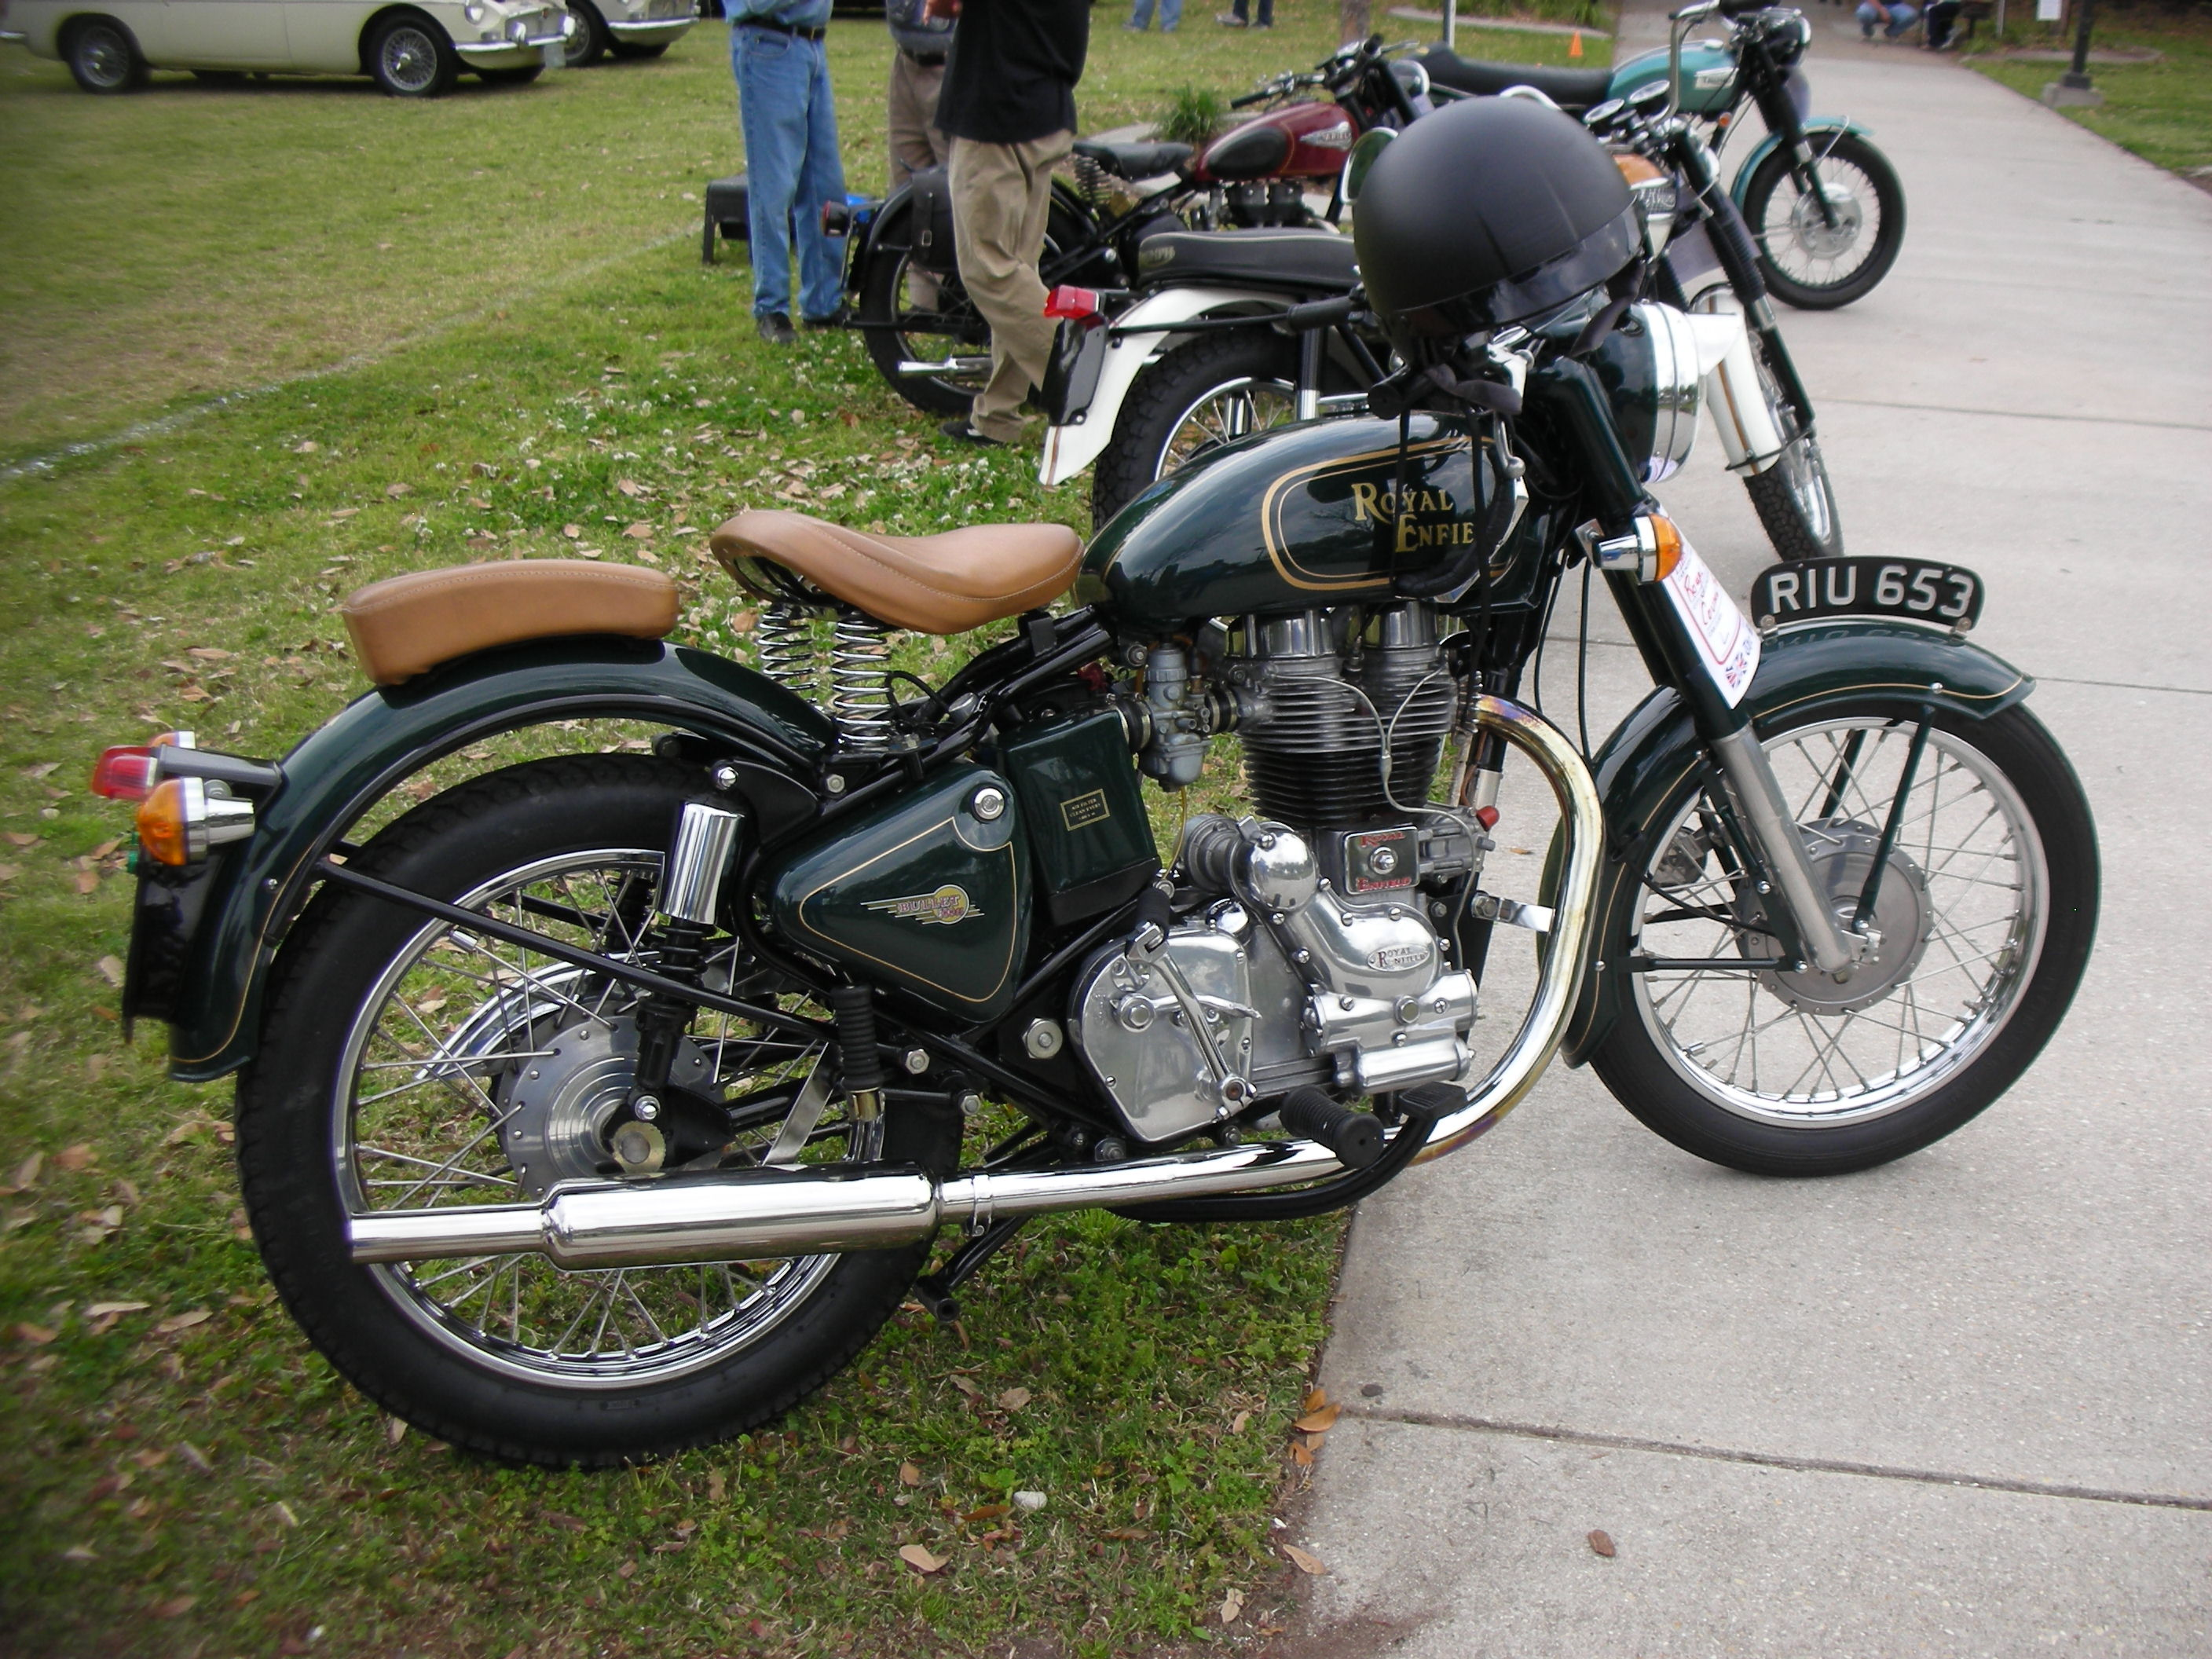 Royal Enfield Bullet 500 Classic images #123991